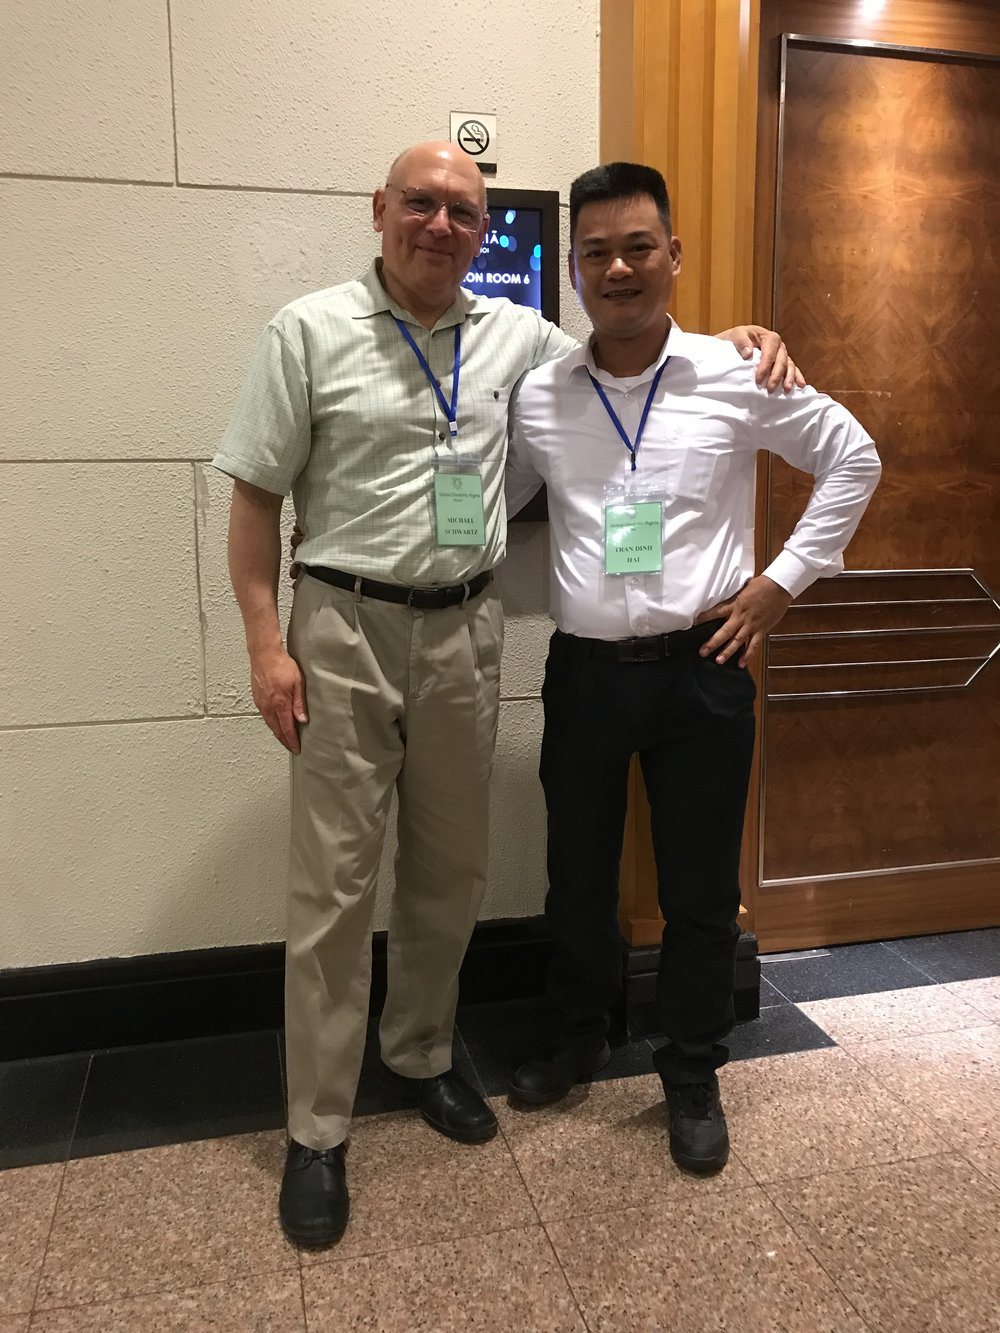 With Hai, a conference participant